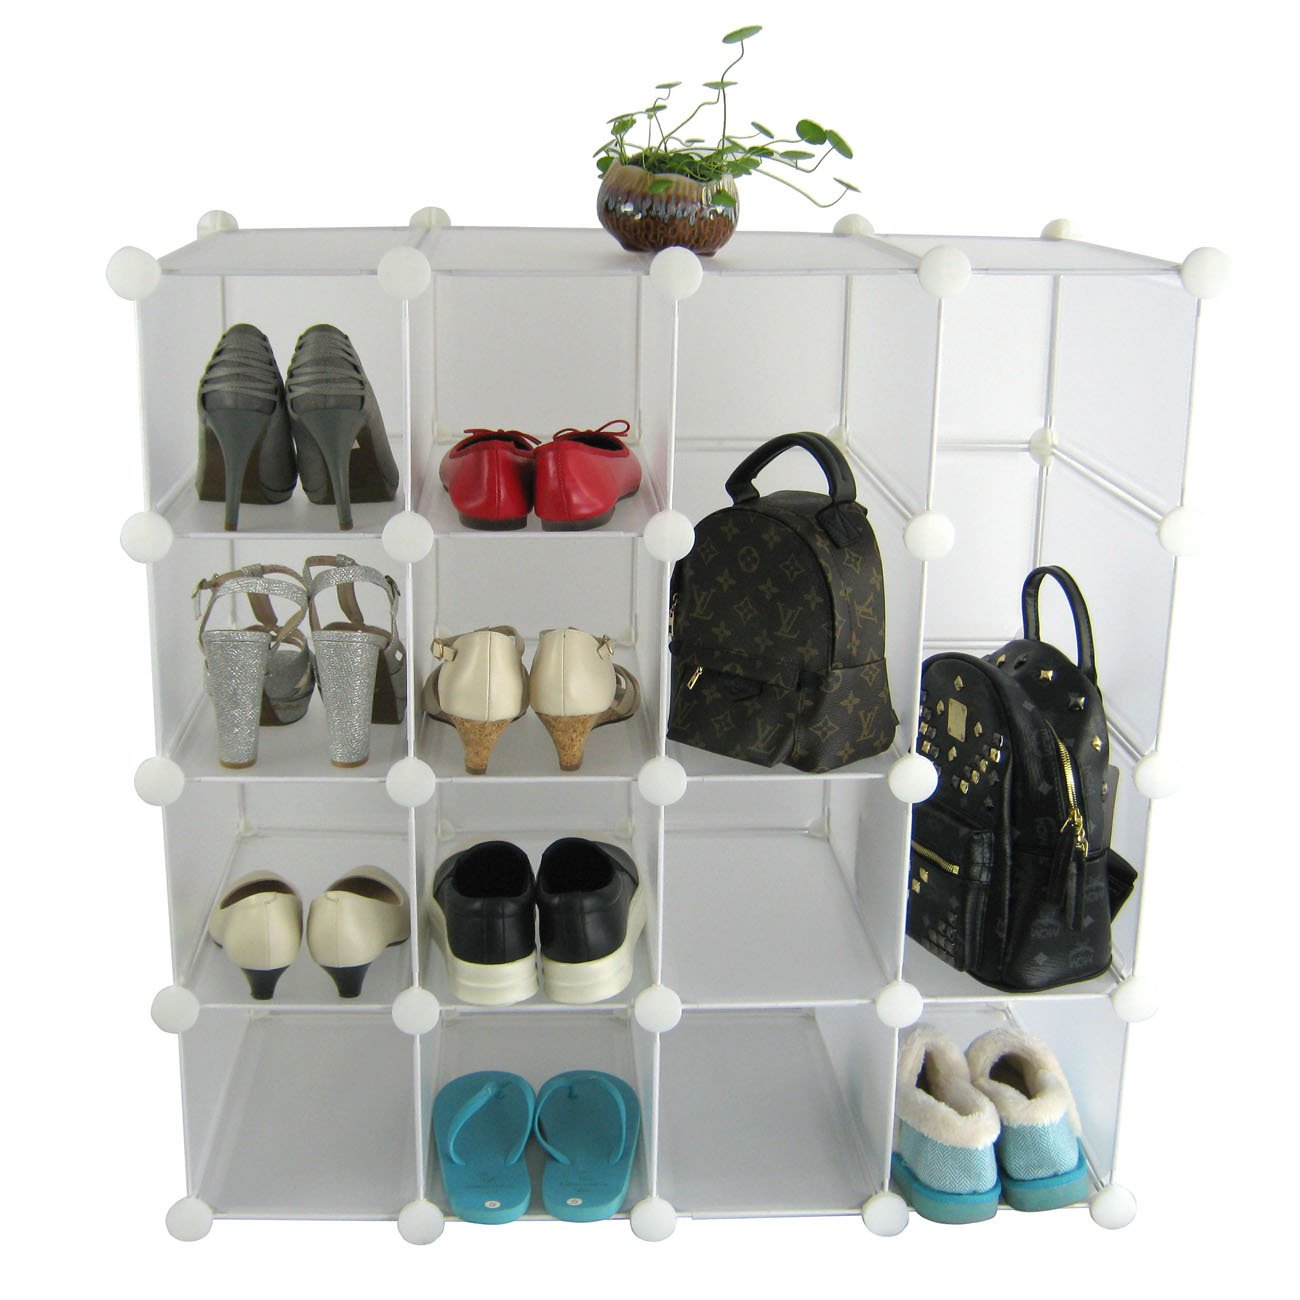 shoe organizer furniture. amazoncom sunhome multifunction 16x interlocking shoe rack organizer diy storage shelves make into any shape or size to organize shoes furniture